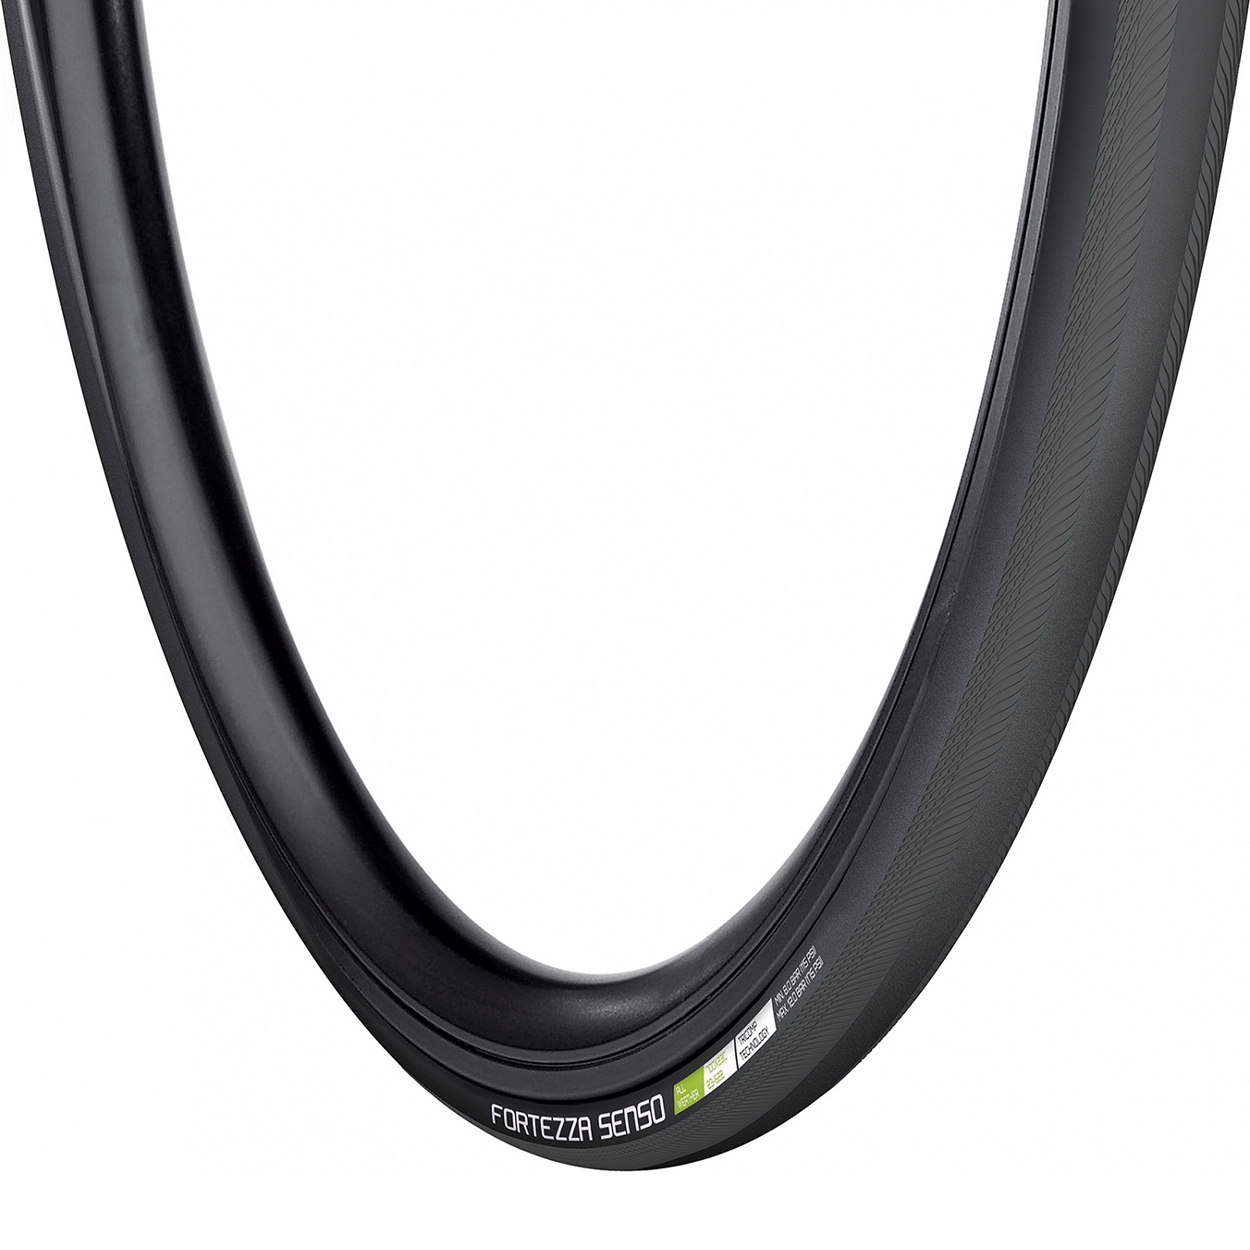 Vredestein Fortezza Senso All Weather Clincher Road Tyre - Clearance